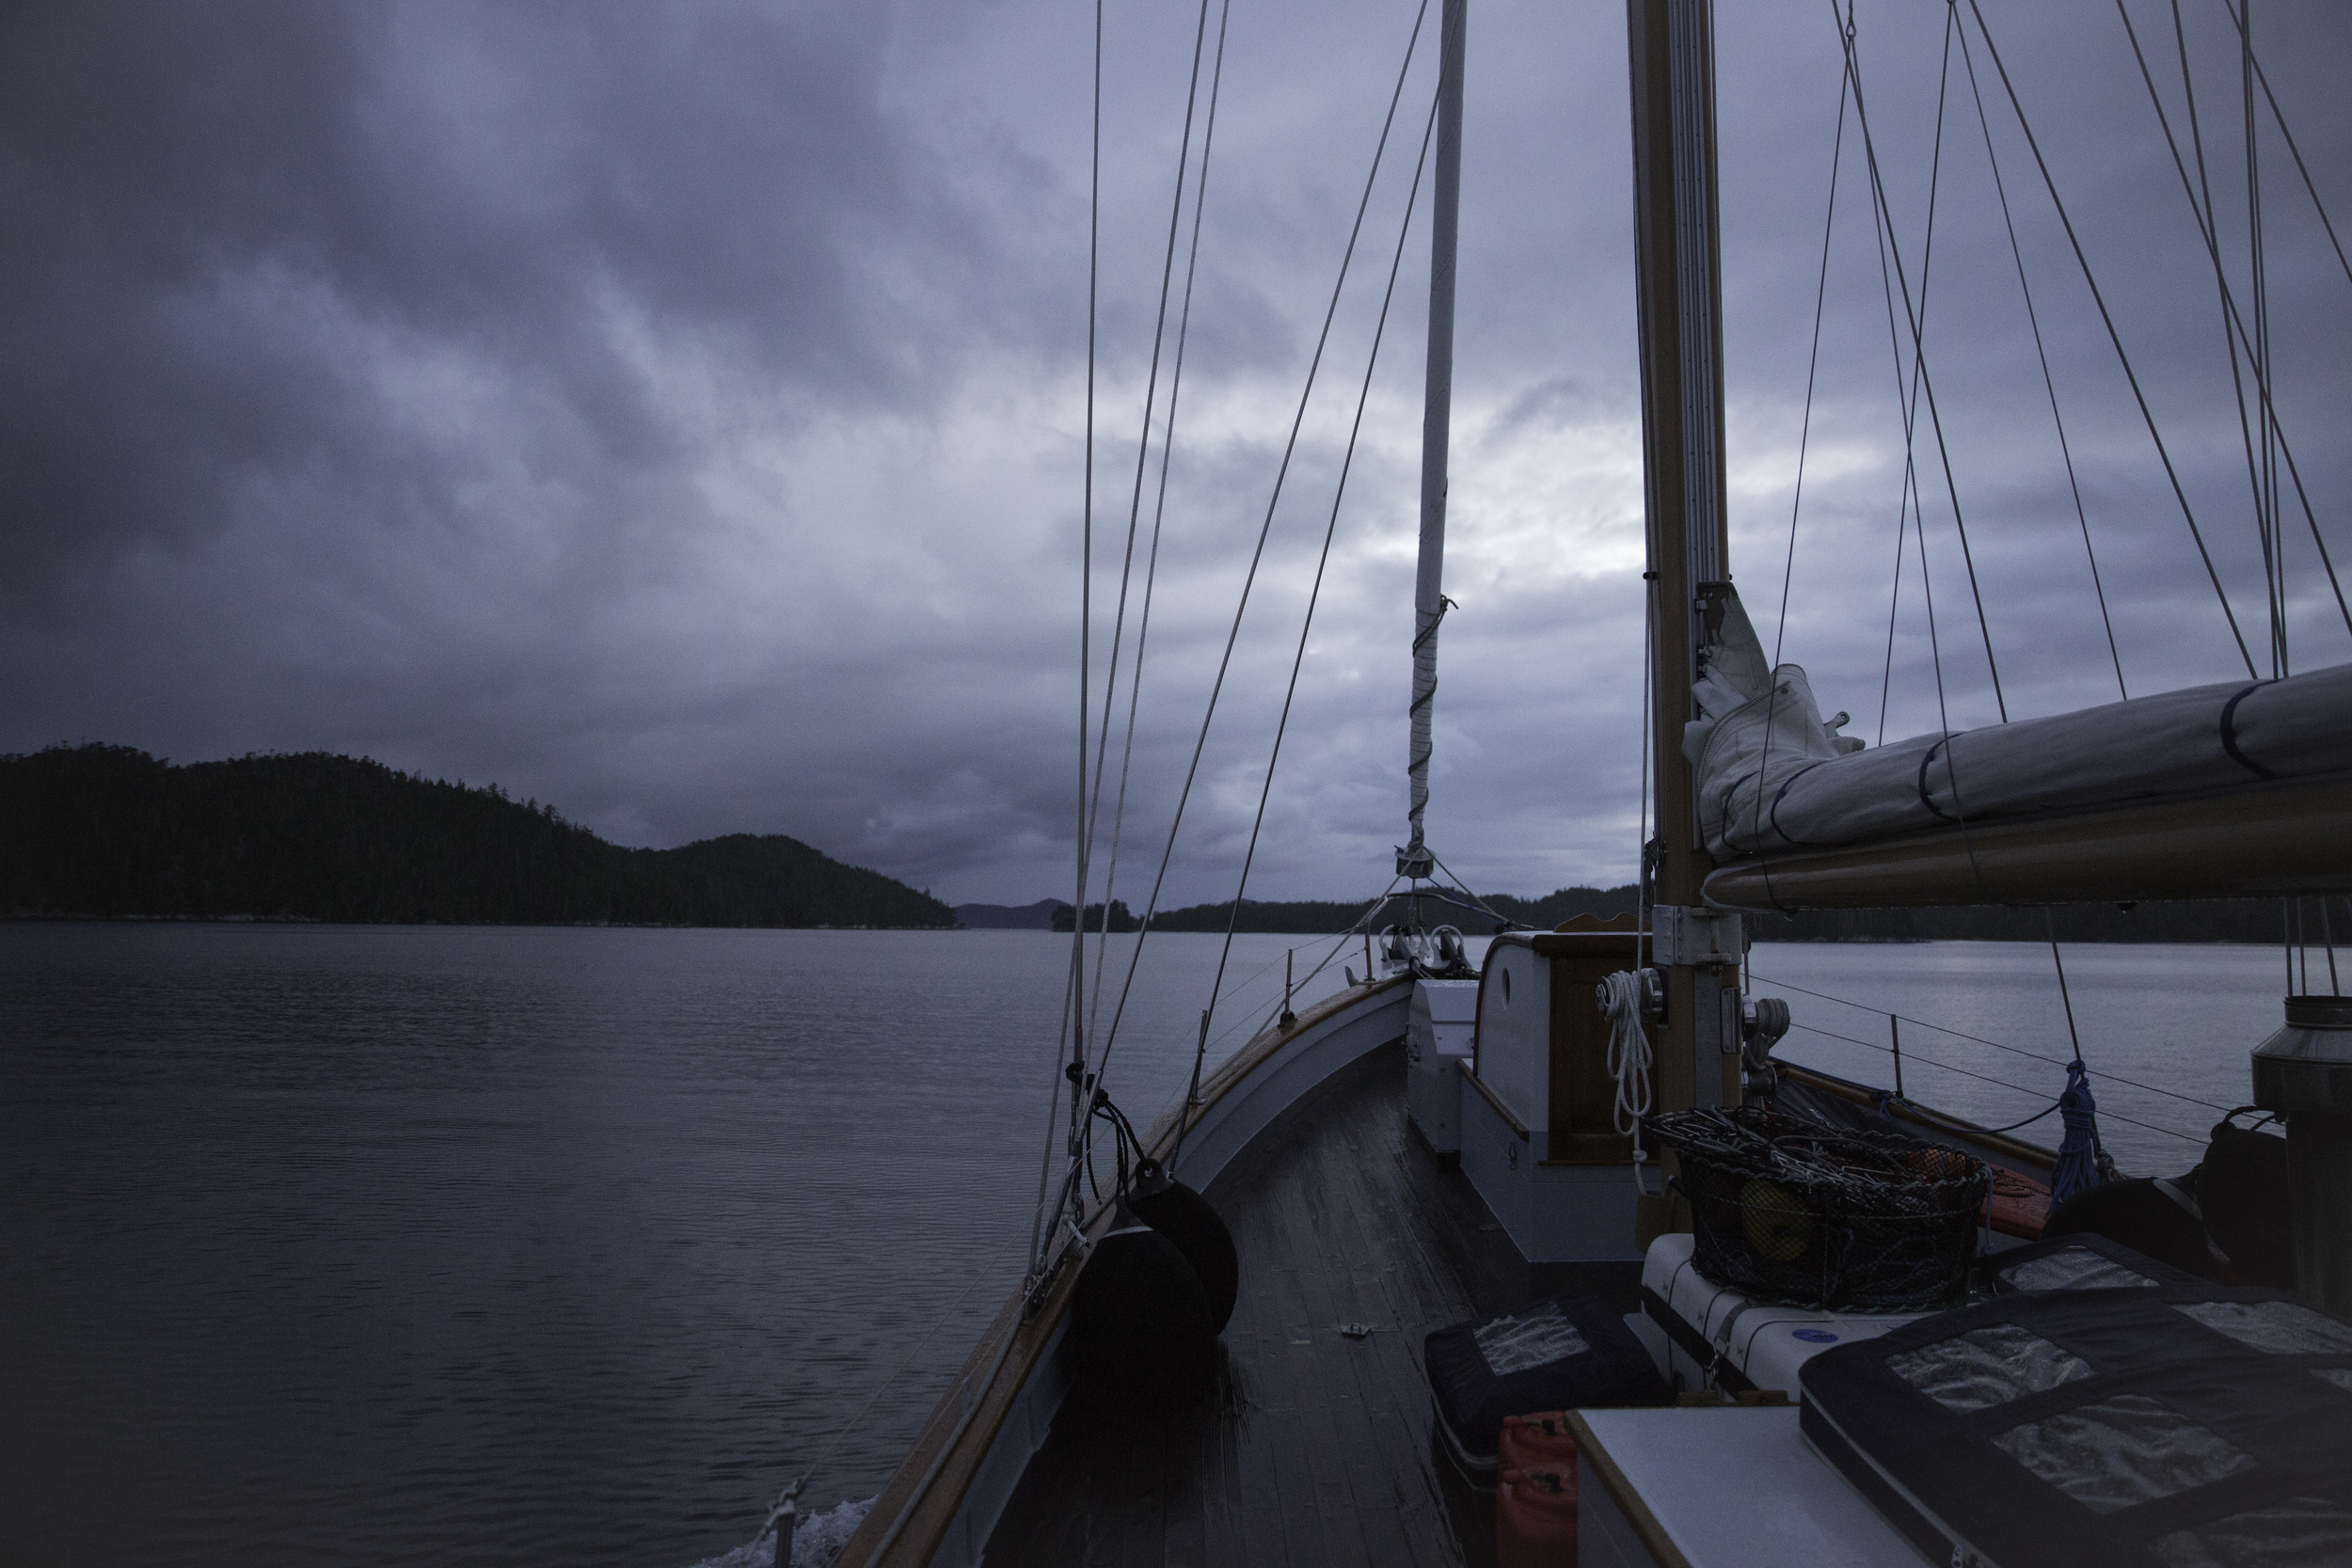 Early morning departure and transit between Calvert Island and Hecate Island south of Bella Bella. Next crossing, Hecate Strait.